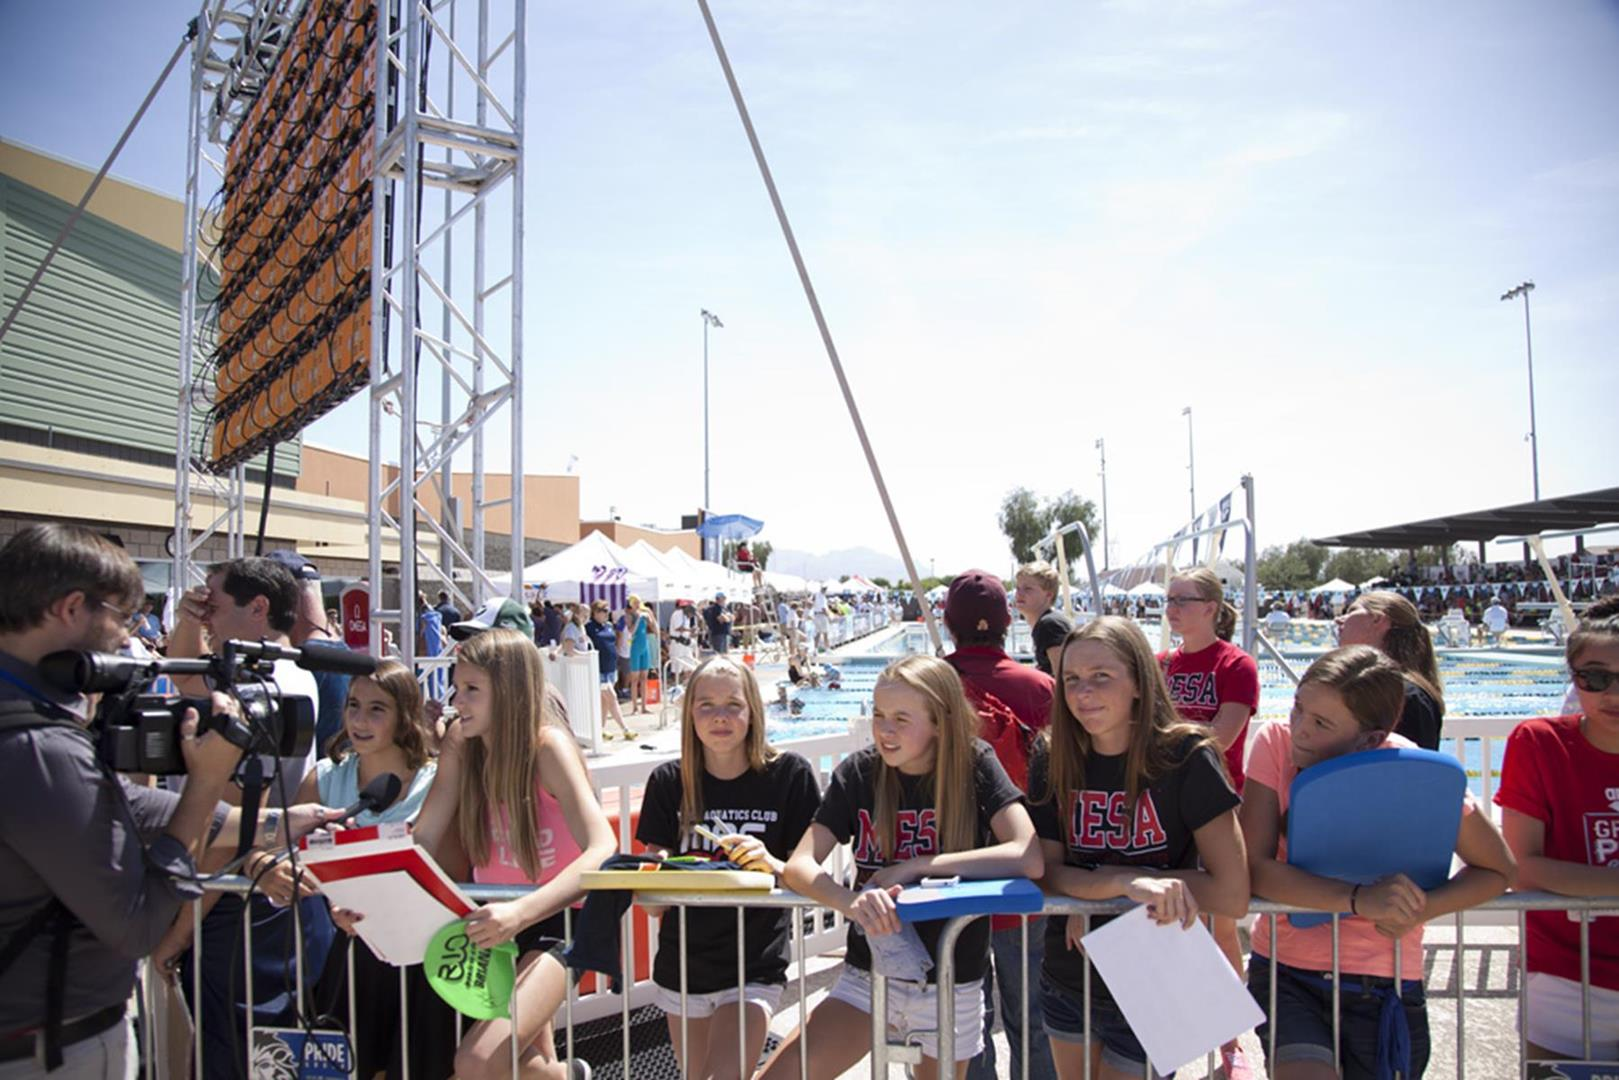 Fans at Grand Prix credit Visit Mesa